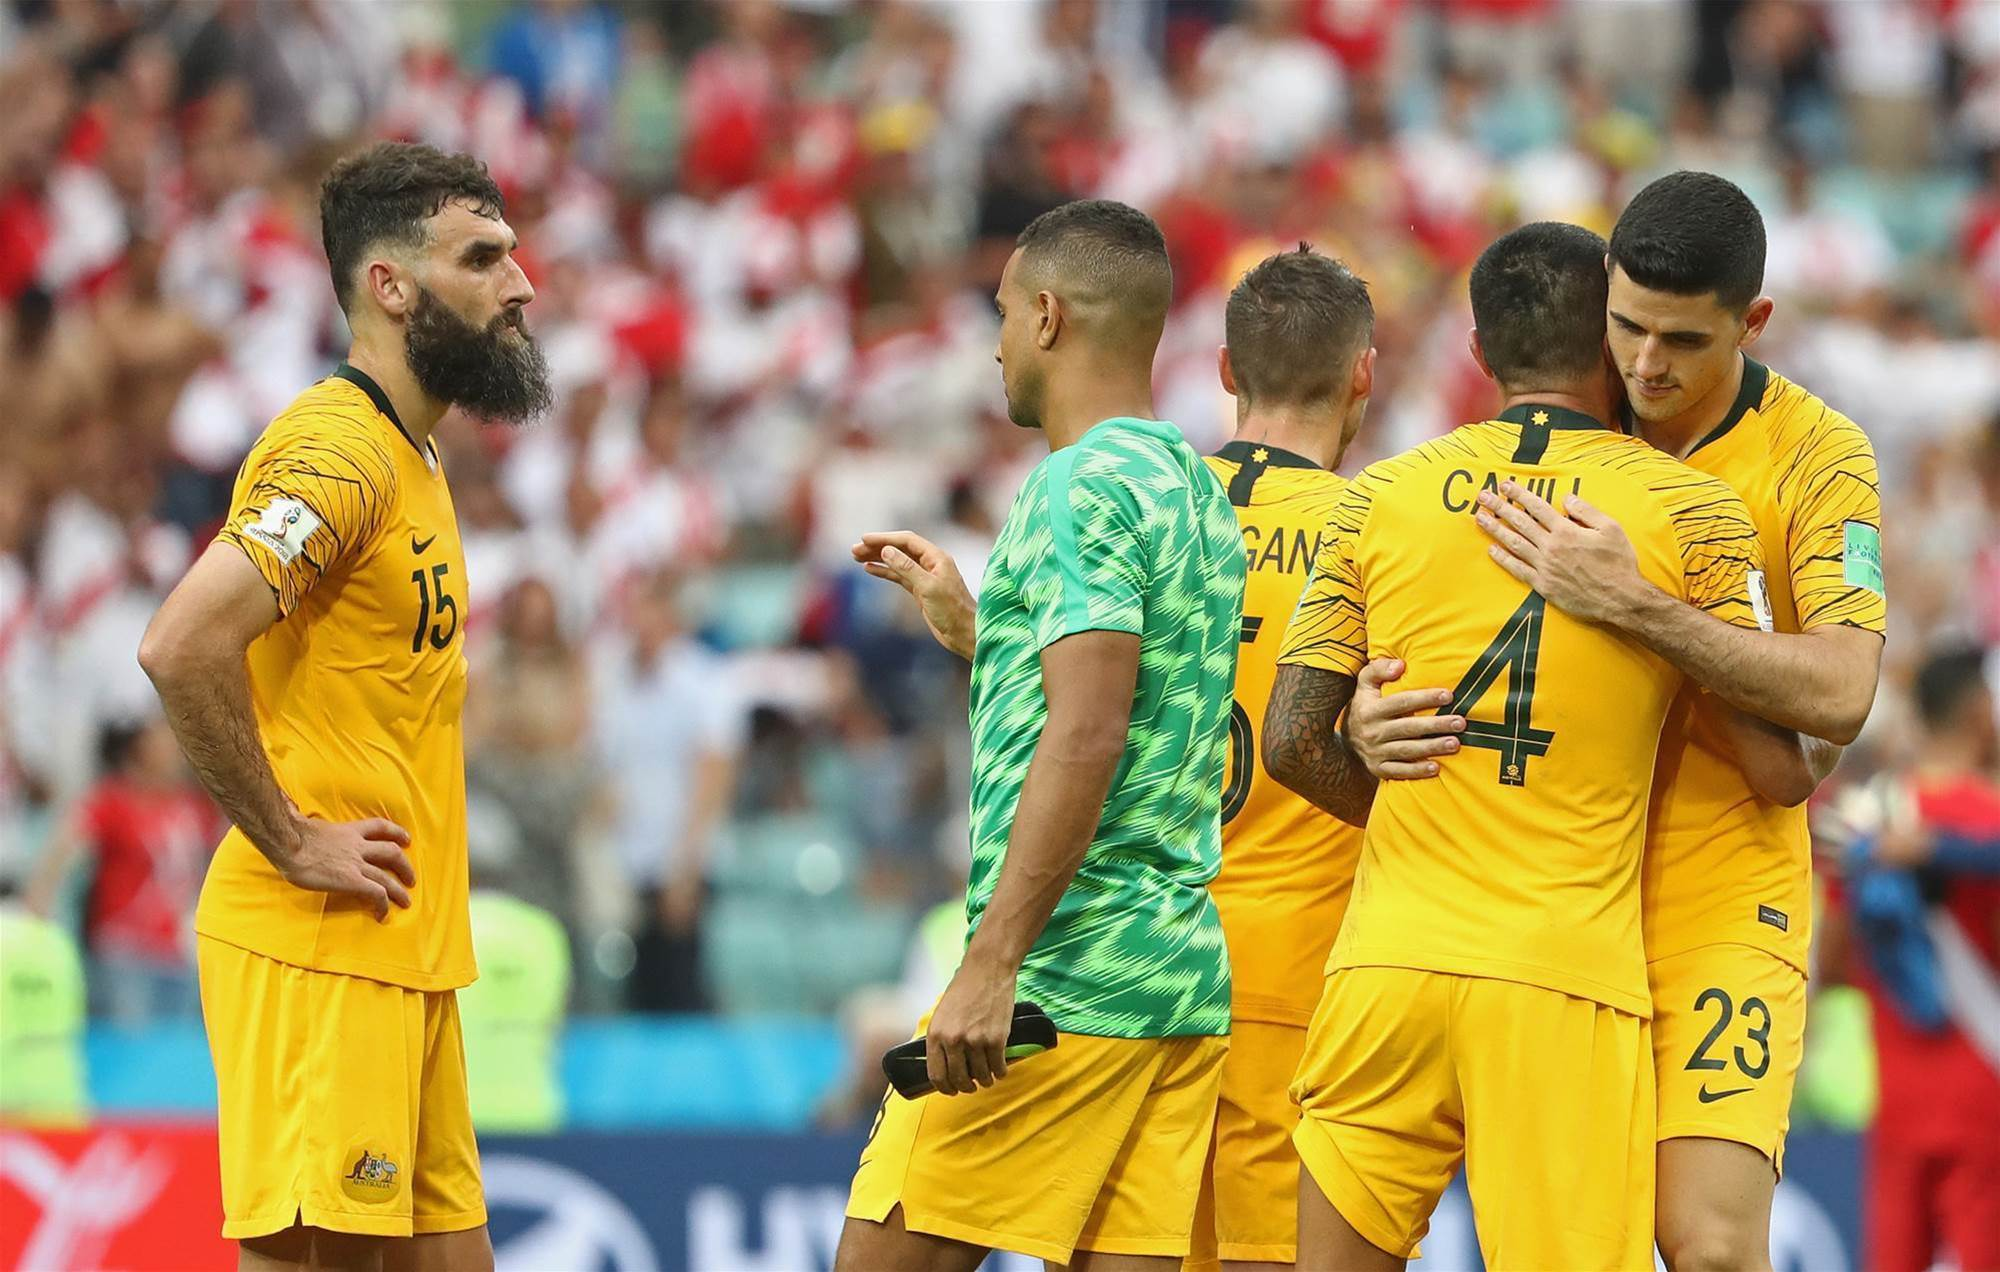 Gallery: Australia's World Cup run ends